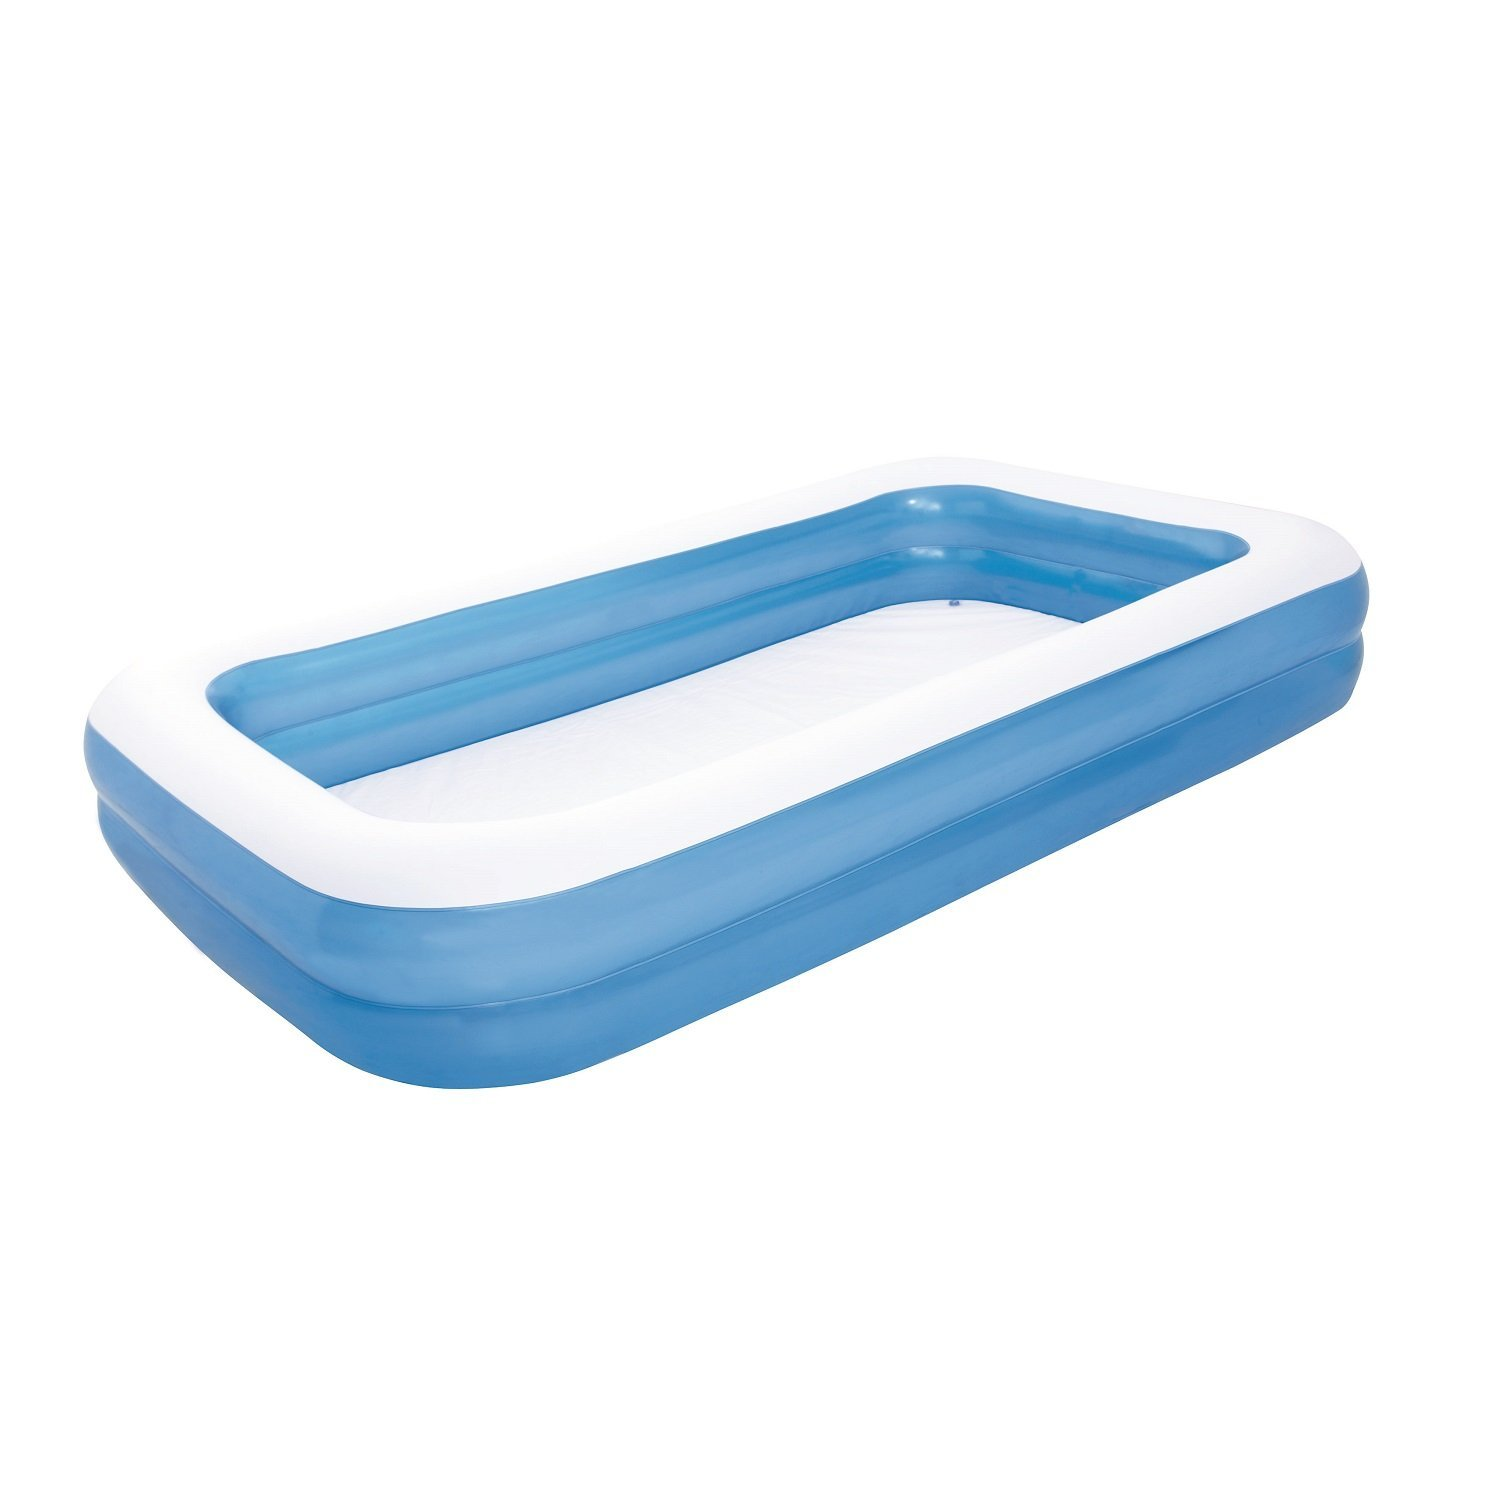 Bestway Rectangular Family Pool – Easy-to-Use Drain Valve, 224 Gallons Capacity, Sturdy Consruction